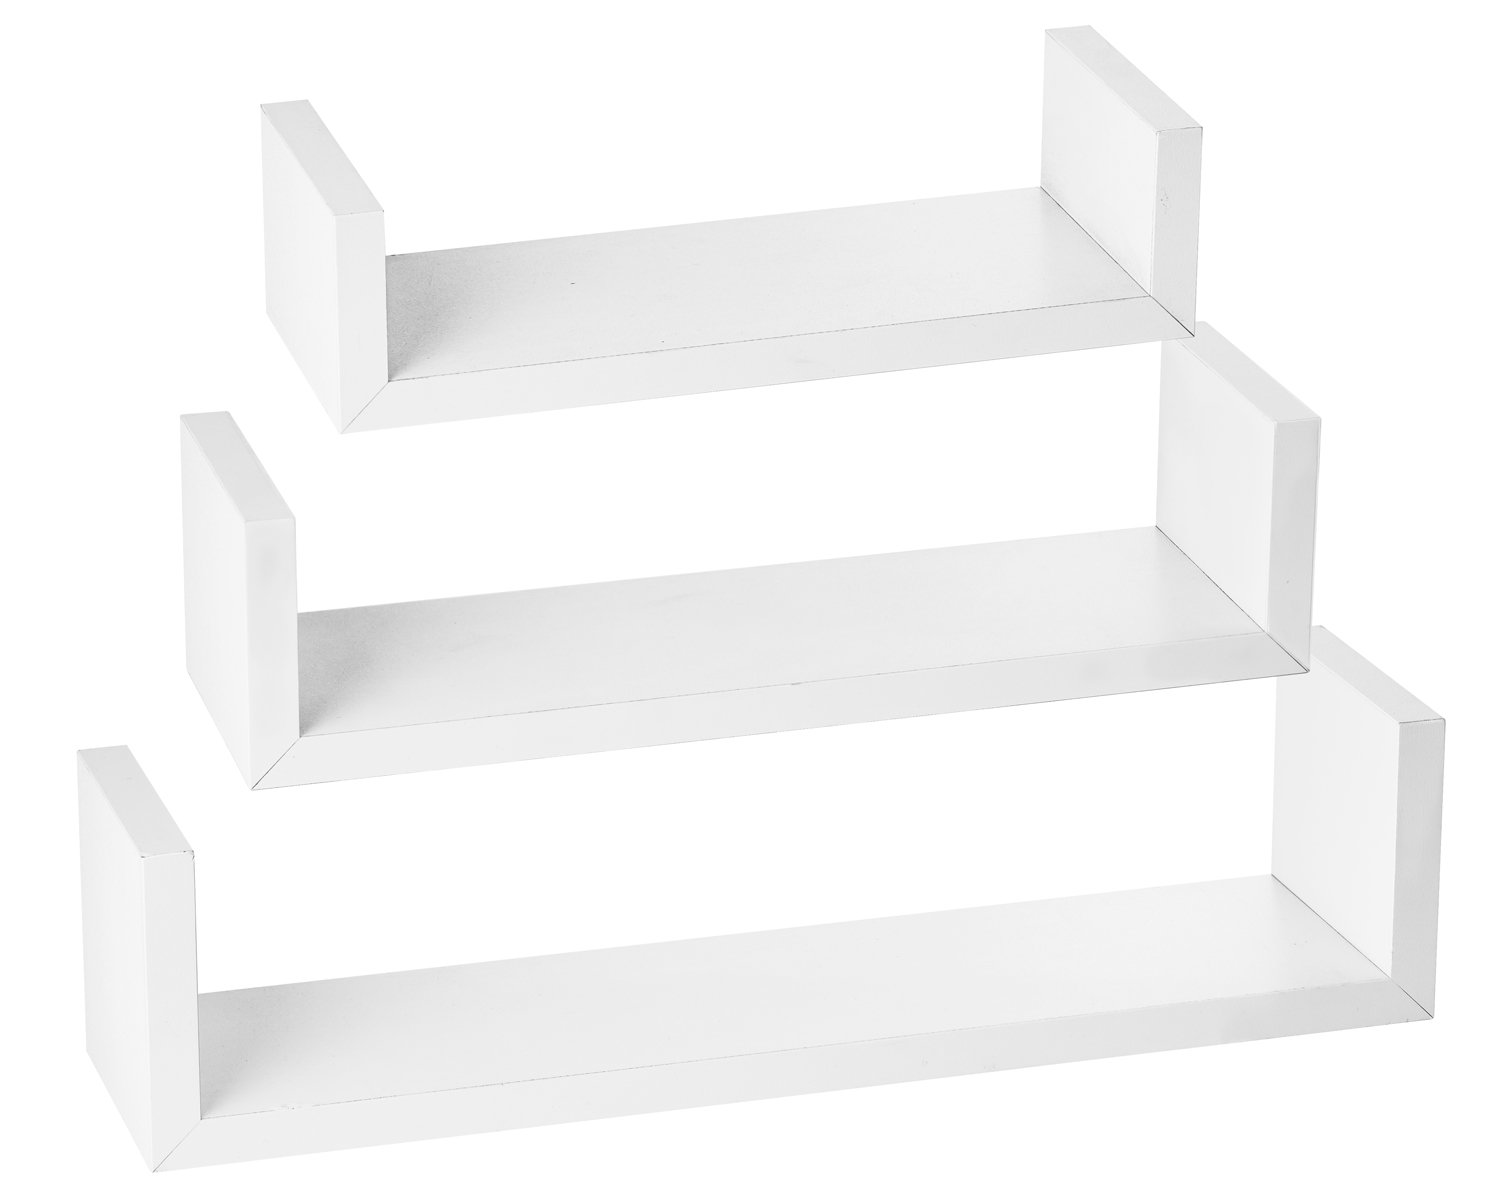 Floating u shelves set of 3 wall shelf display modern Modern floating wall shelves